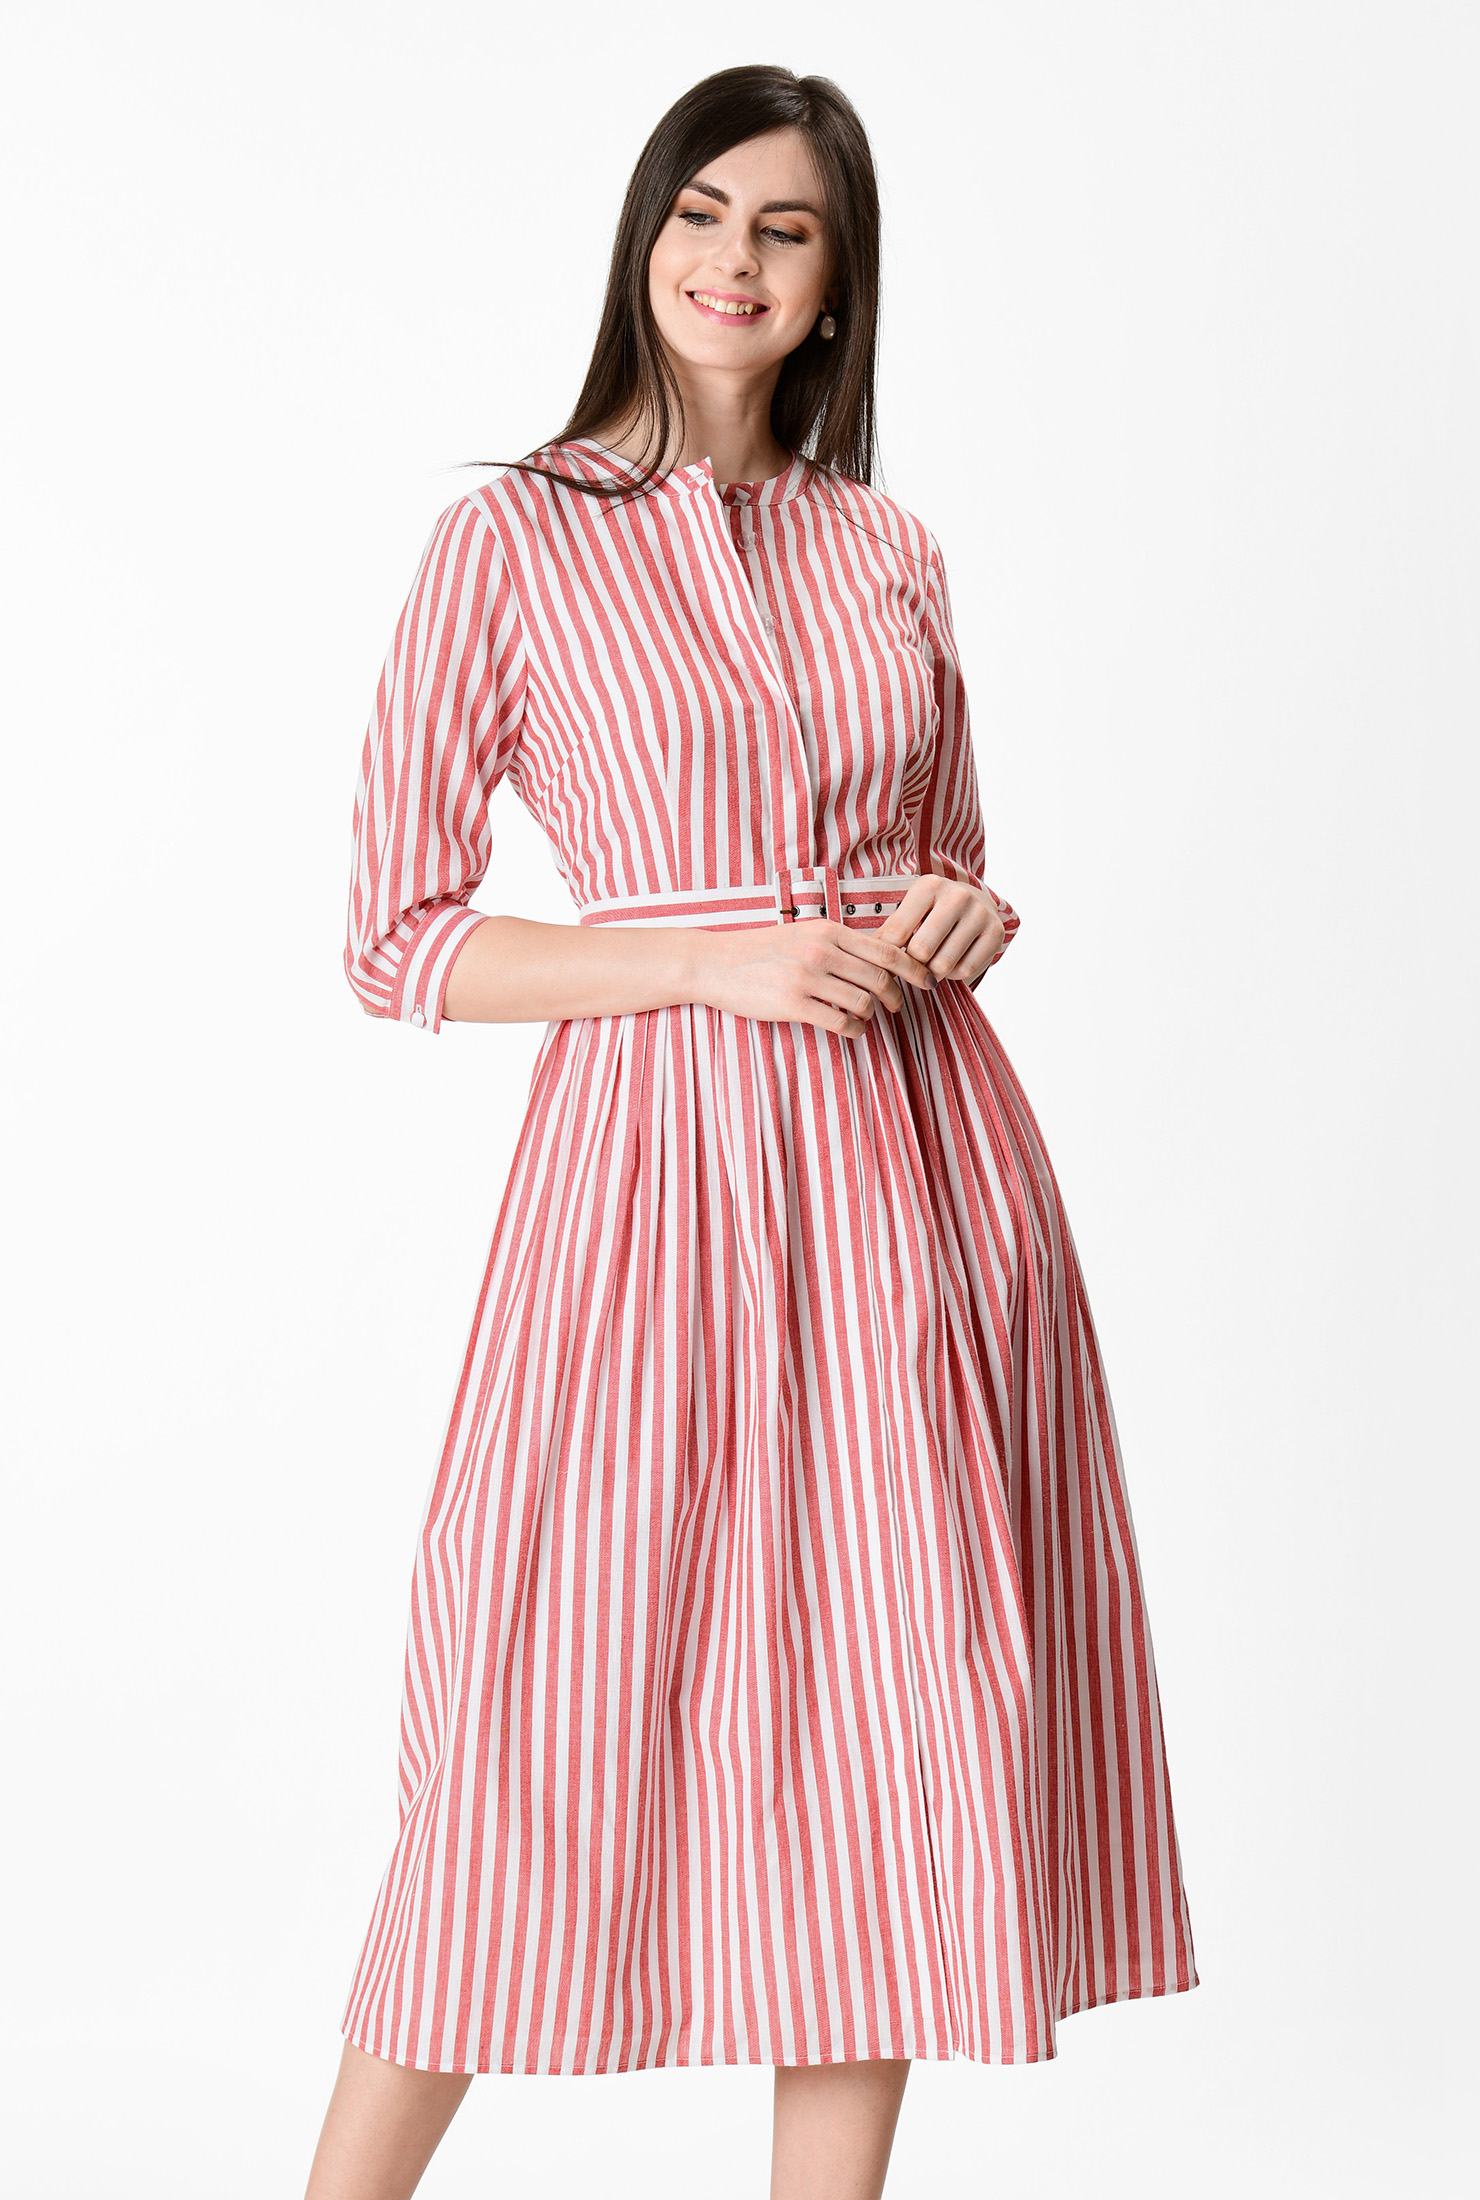 Fifties Dresses : 1950s Style Swing to Wiggle Dresses Stripe cotton belted shirtdress $69.95 AT vintagedancer.com